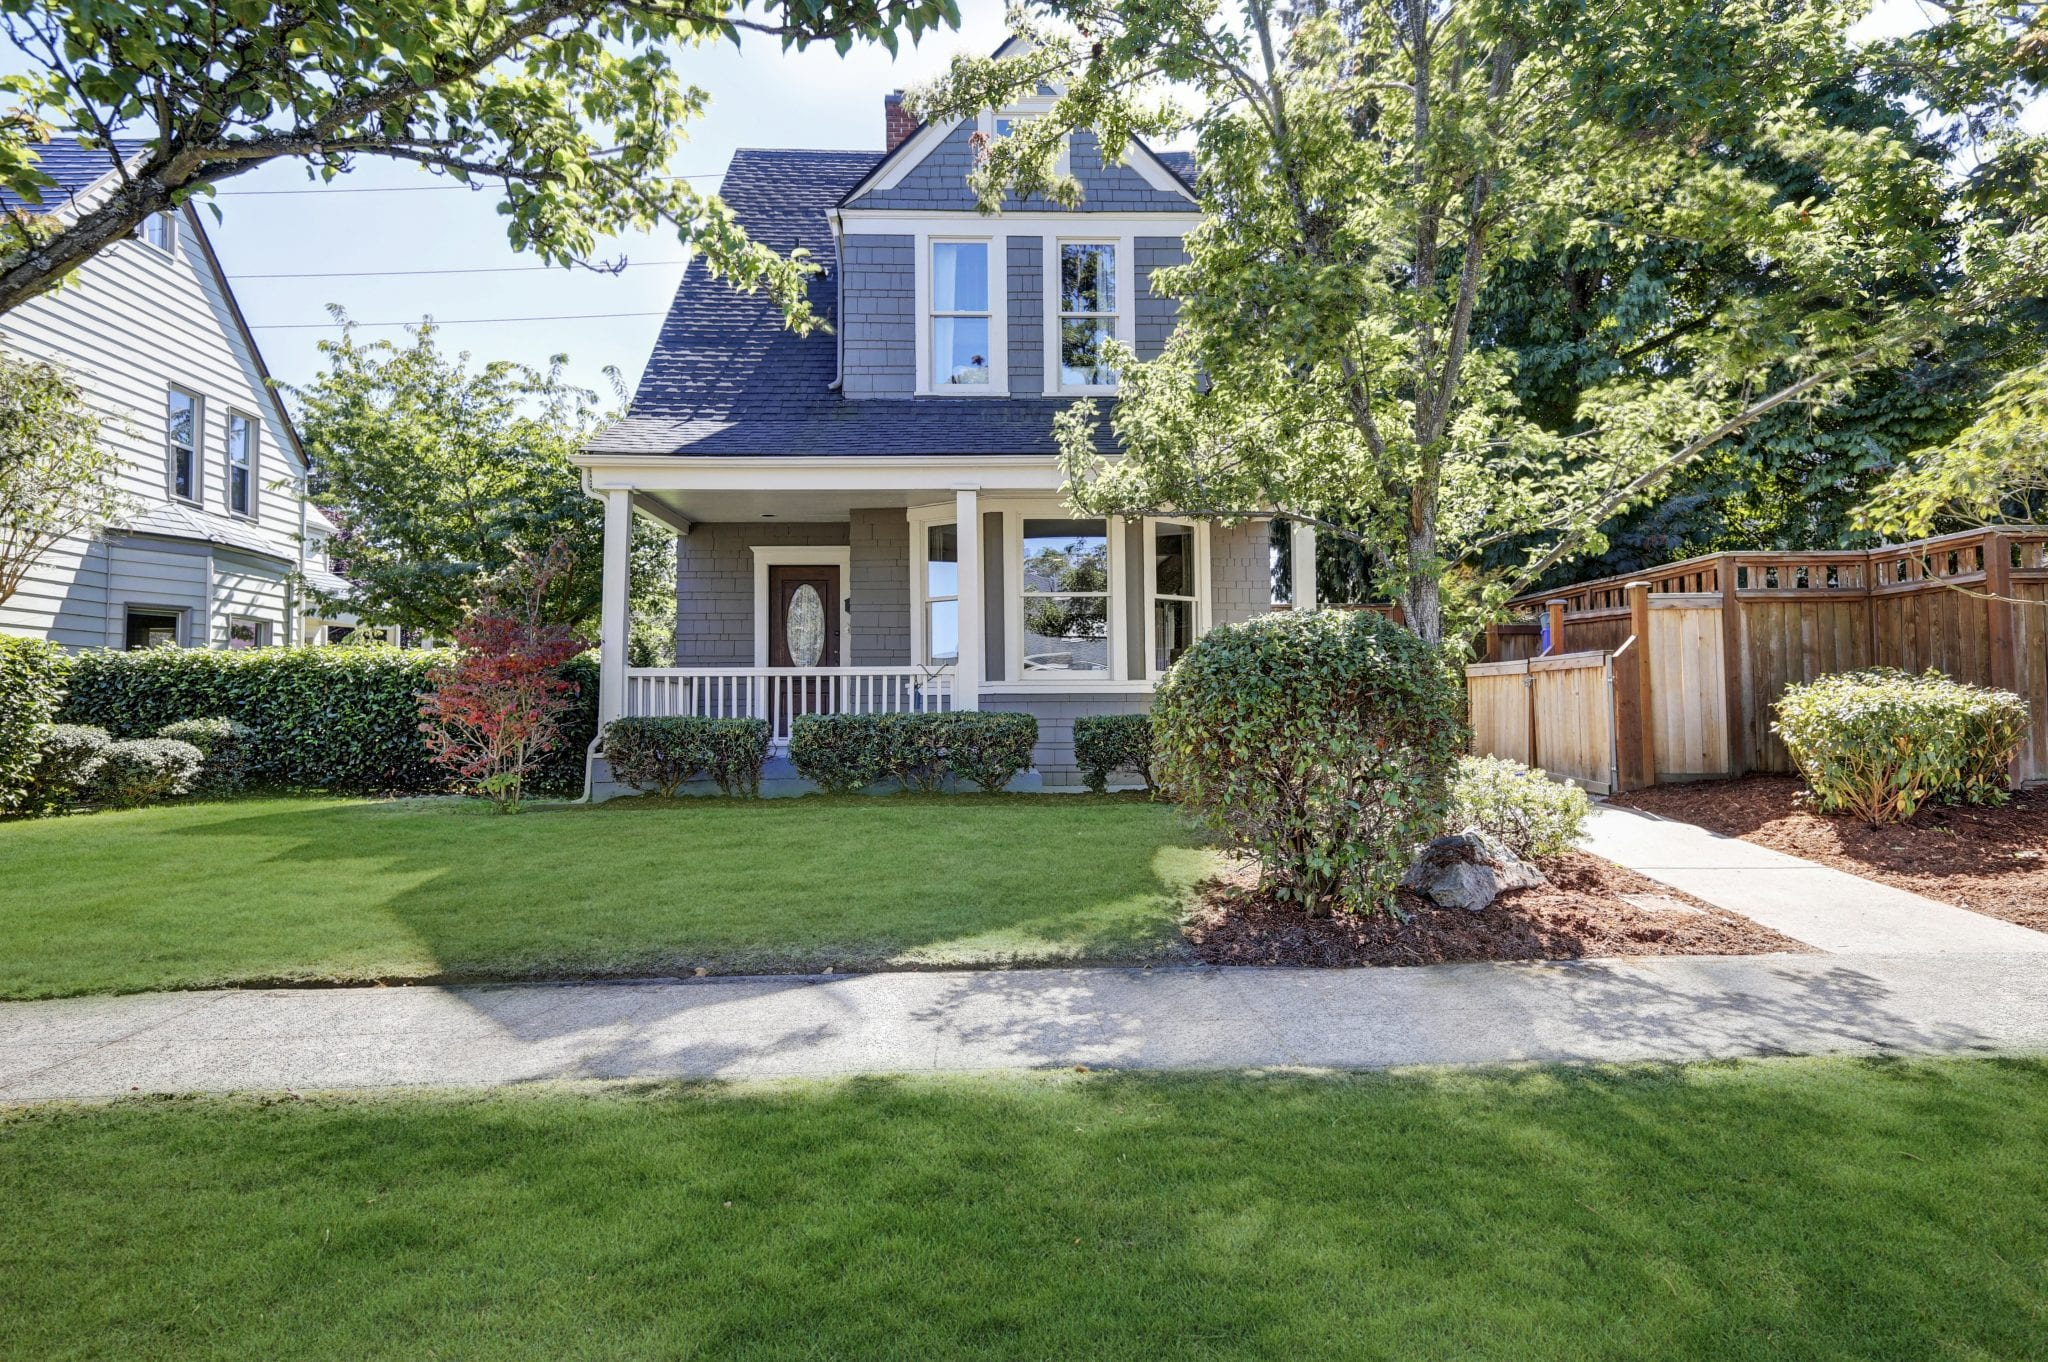 American front house with well-kept front yard and beautiful curb appeal.